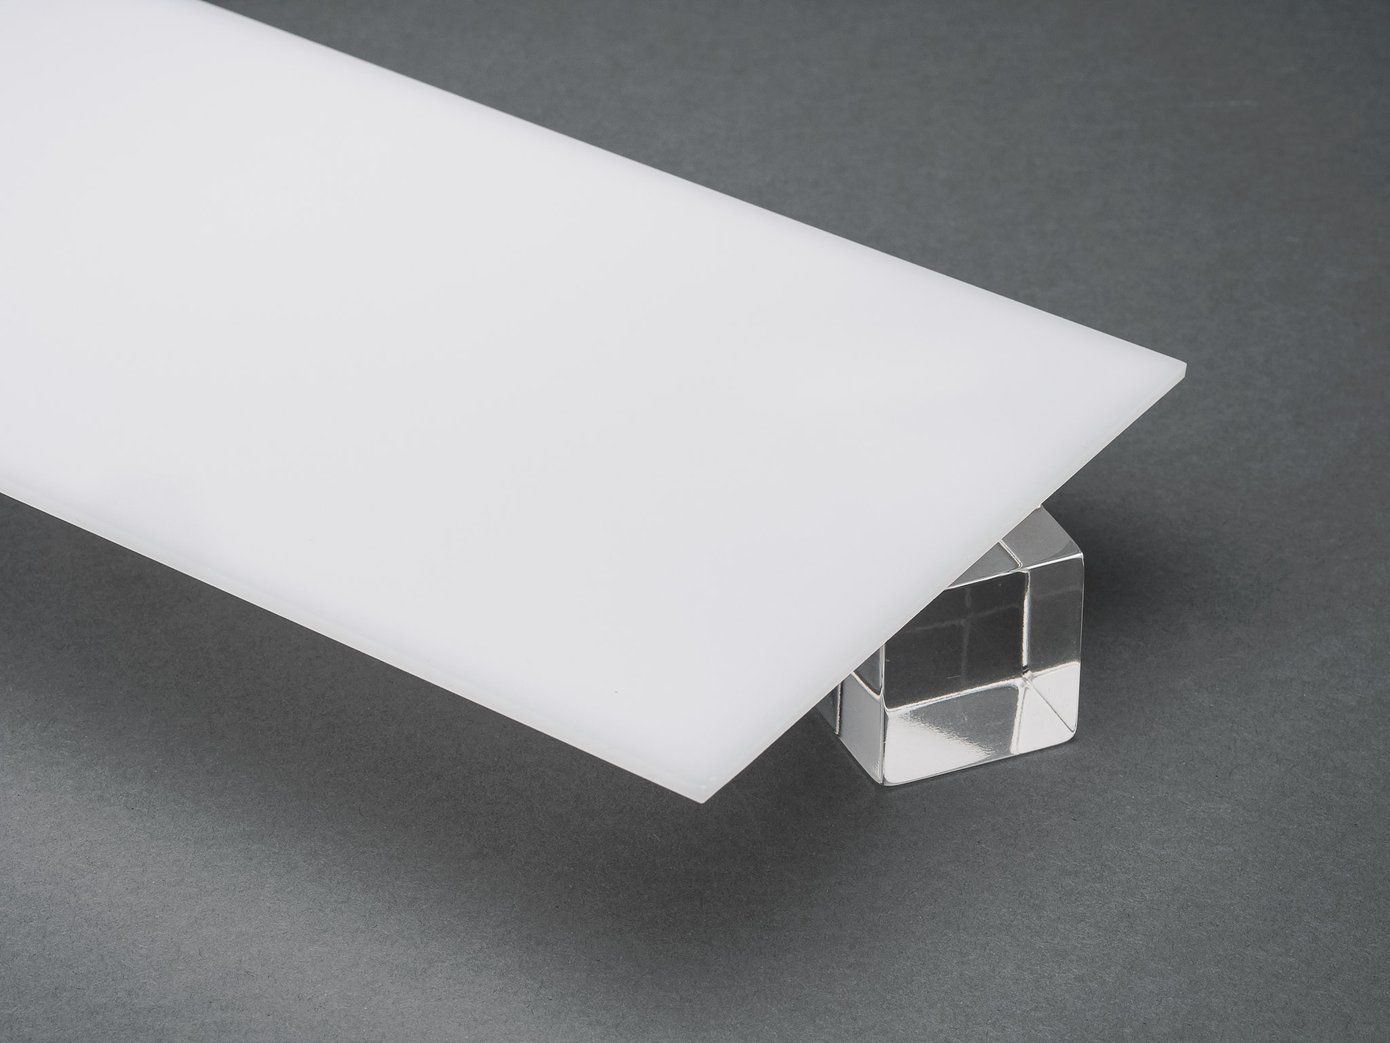 White Translucent Acrylic Sheet White Acrylic Sheet Acrylic Sheets Translucent